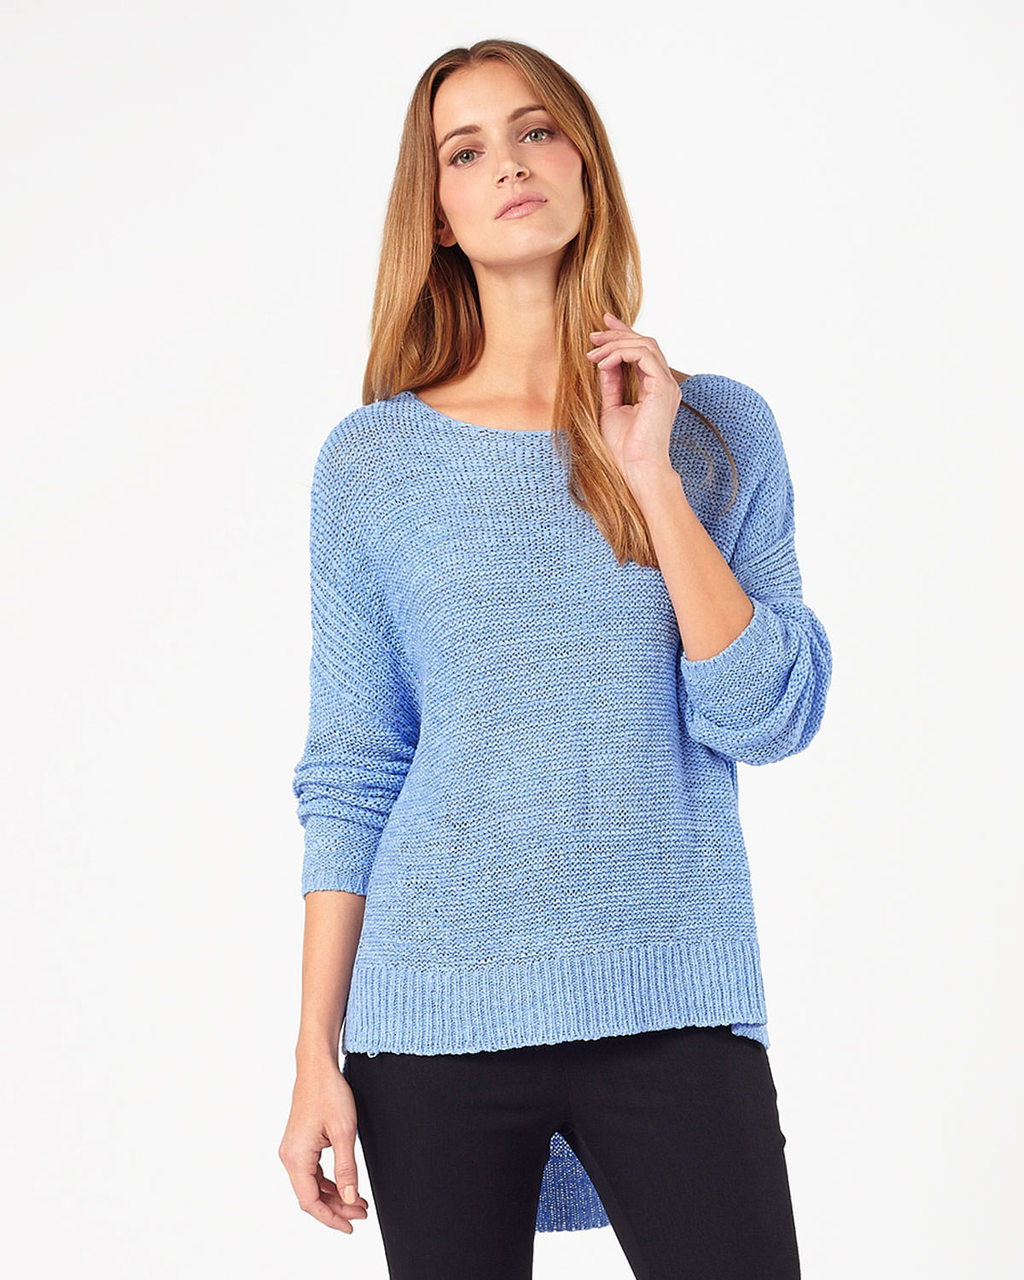 Tazia Tape Yarn Jumper - neckline: round neck; pattern: plain; length: below the bottom; style: standard; predominant colour: pale blue; occasions: casual, creative work; fibres: acrylic - mix; fit: standard fit; sleeve length: long sleeve; sleeve style: standard; texture group: knits/crochet; pattern type: knitted - other; season: s/s 2016; wardrobe: highlight